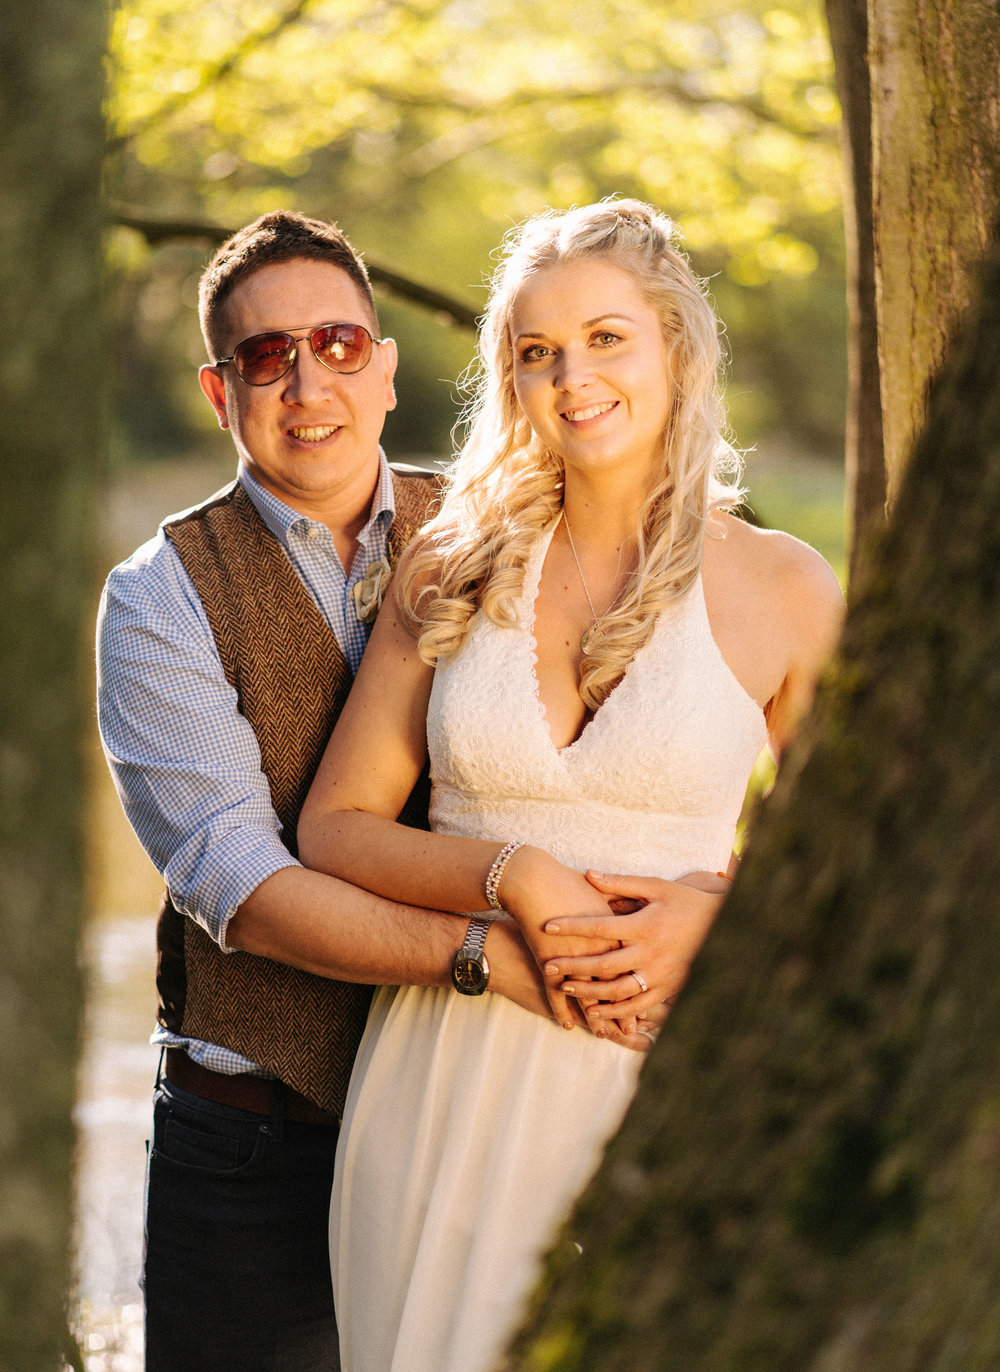 wedding-photography-tewinbury-farm-barn-hertfordshire-london-48